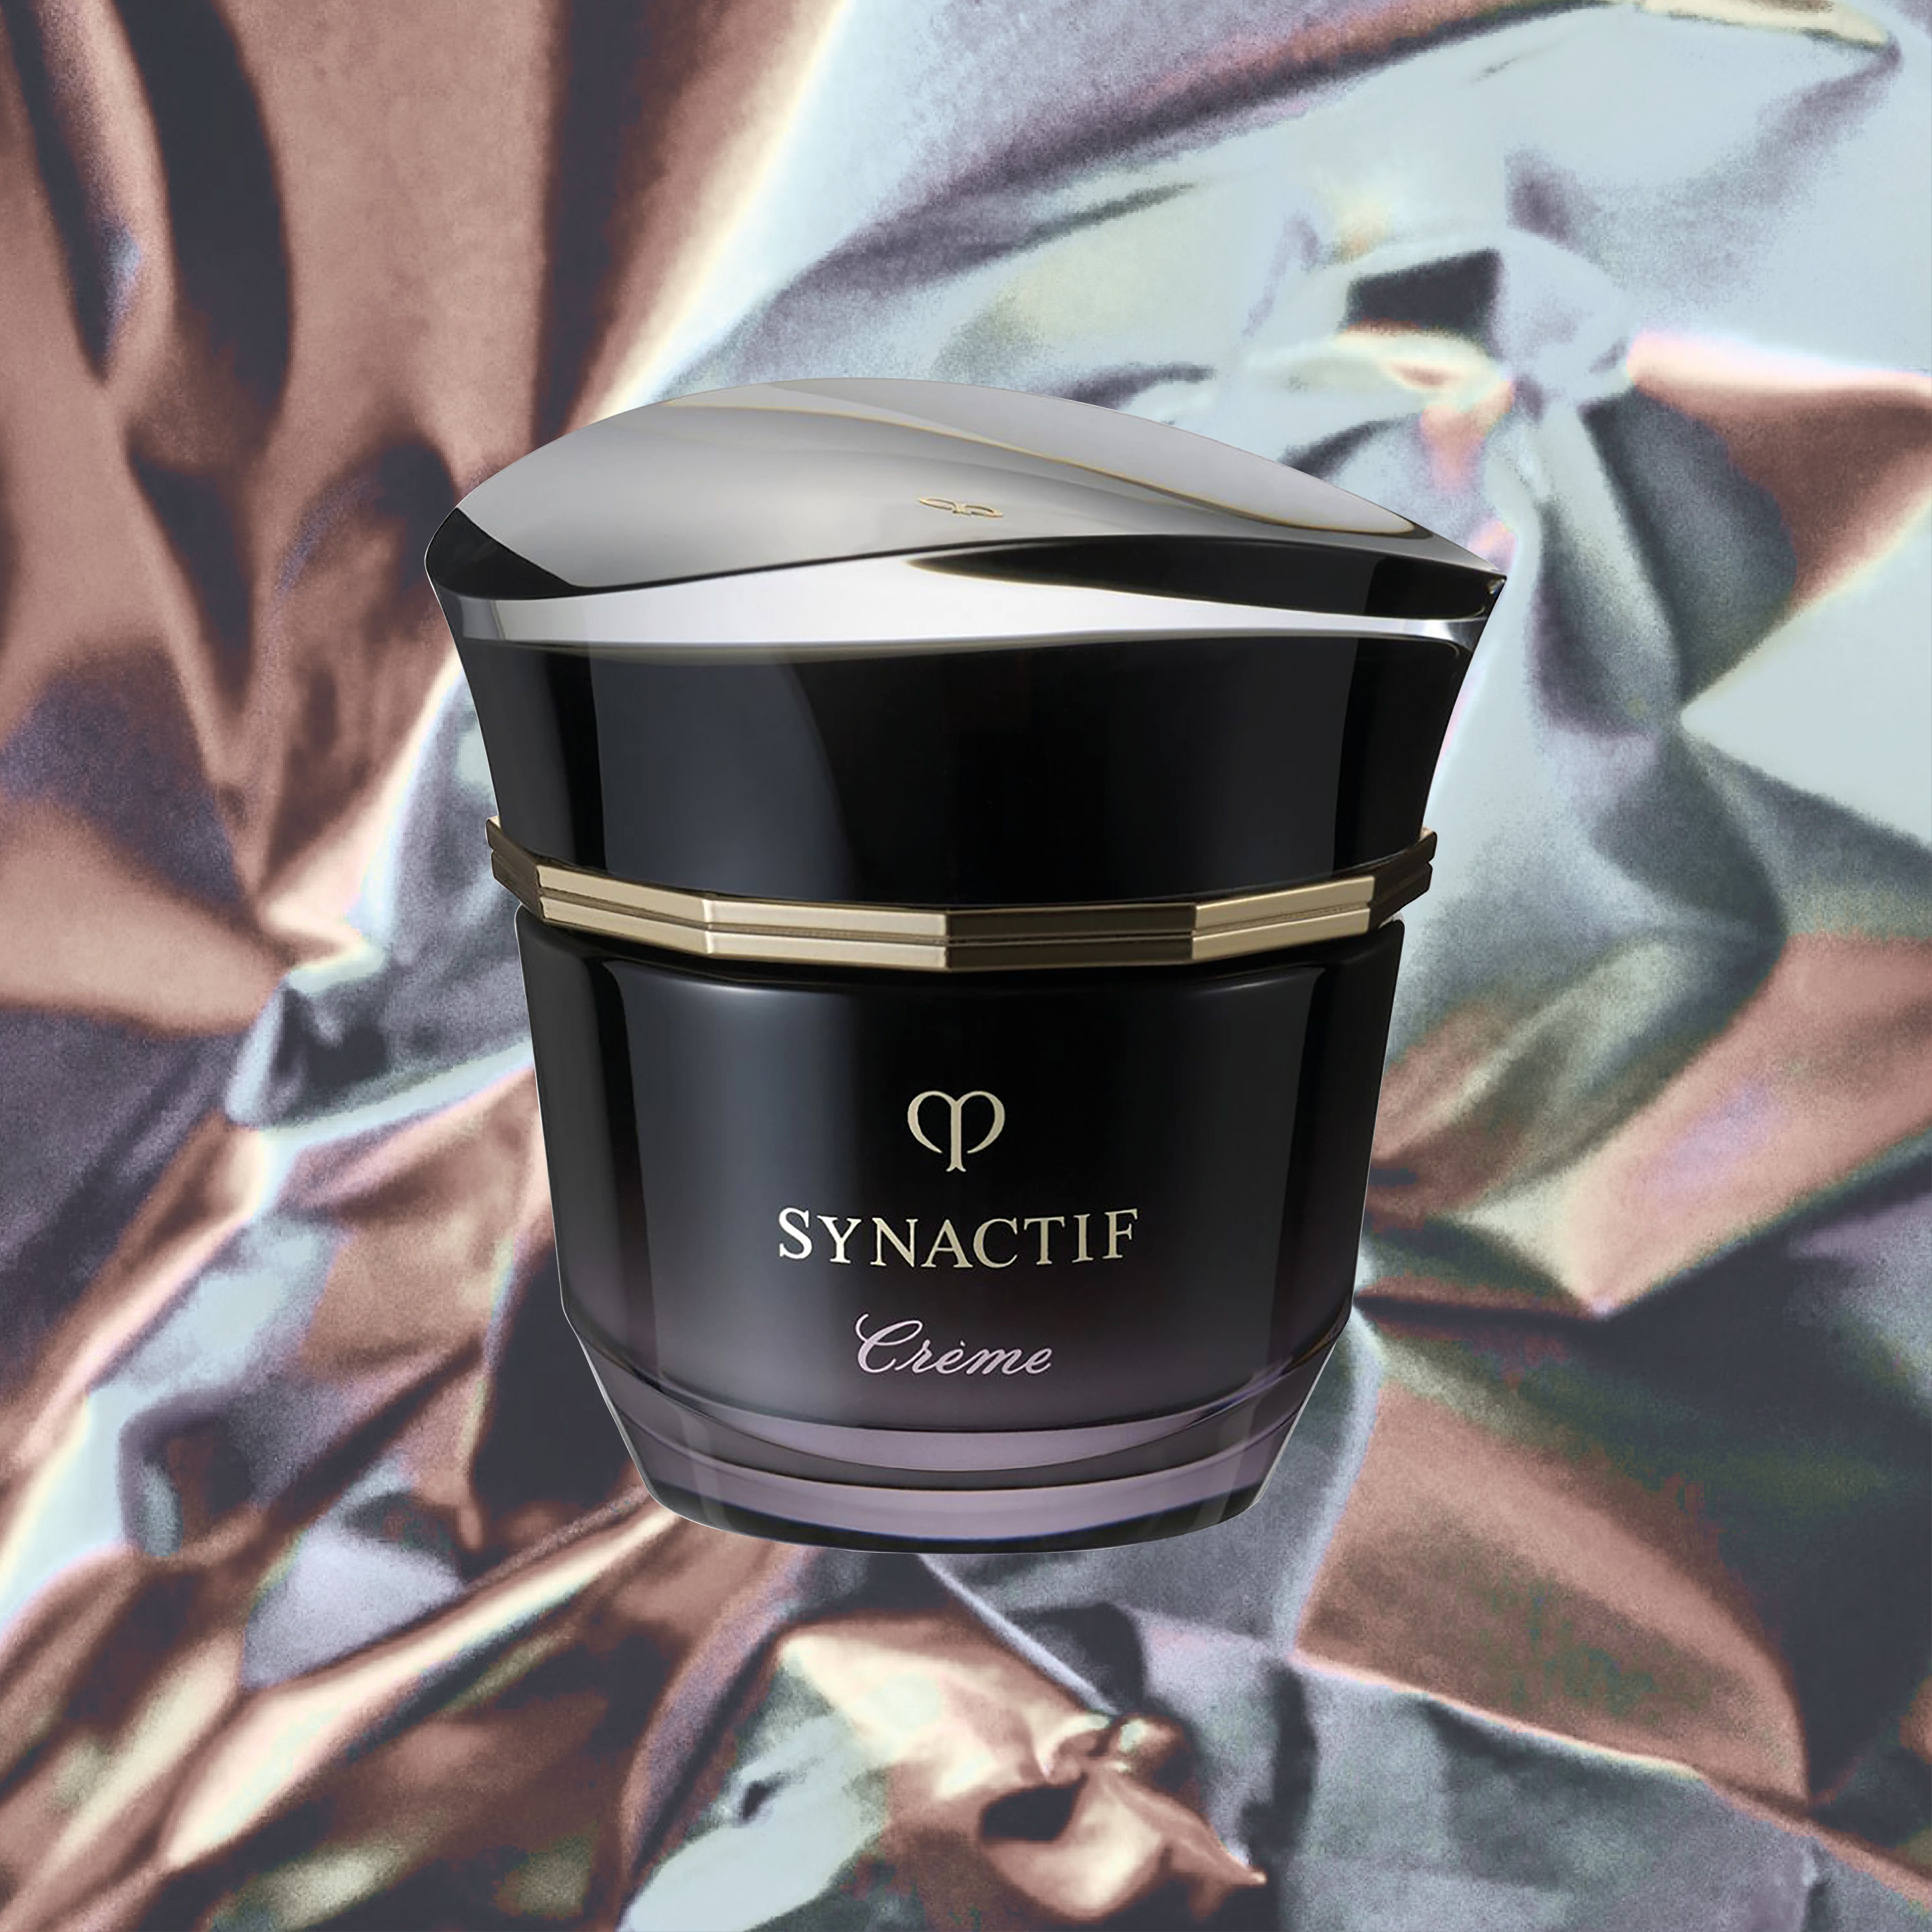 The World S Most Expensive Skincare Products That Are Worth It Buro 24 7 Malaysia In 2020 Effective Skin Care Products Skin Care Chanel Serum